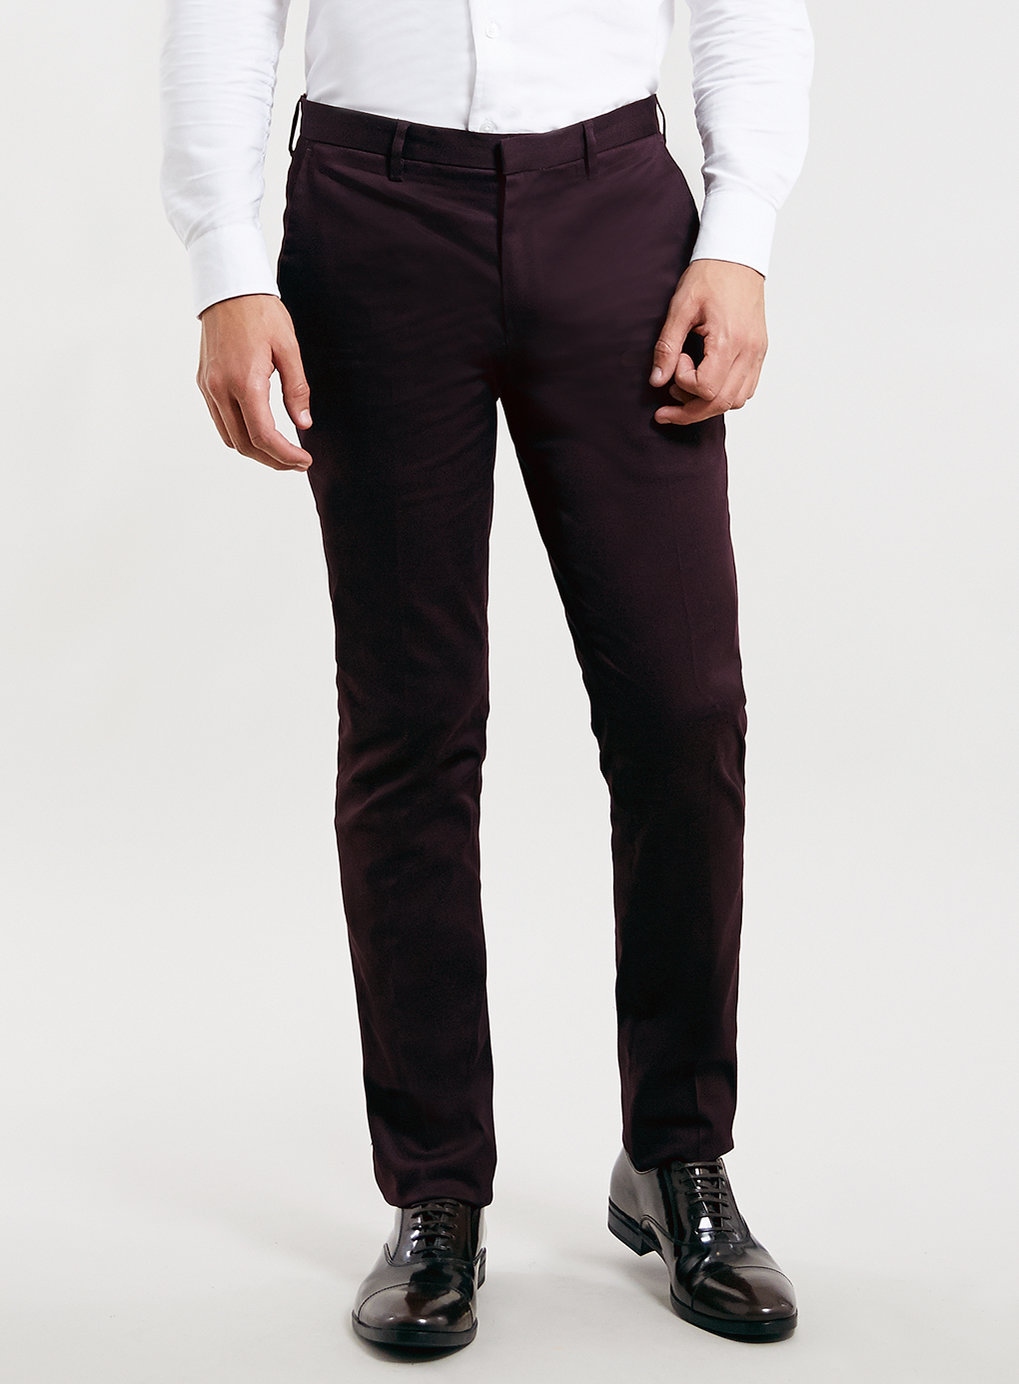 Lastest Stretch Skinny Pants  Skinny Work Pants  THE LIMITED Best Pants